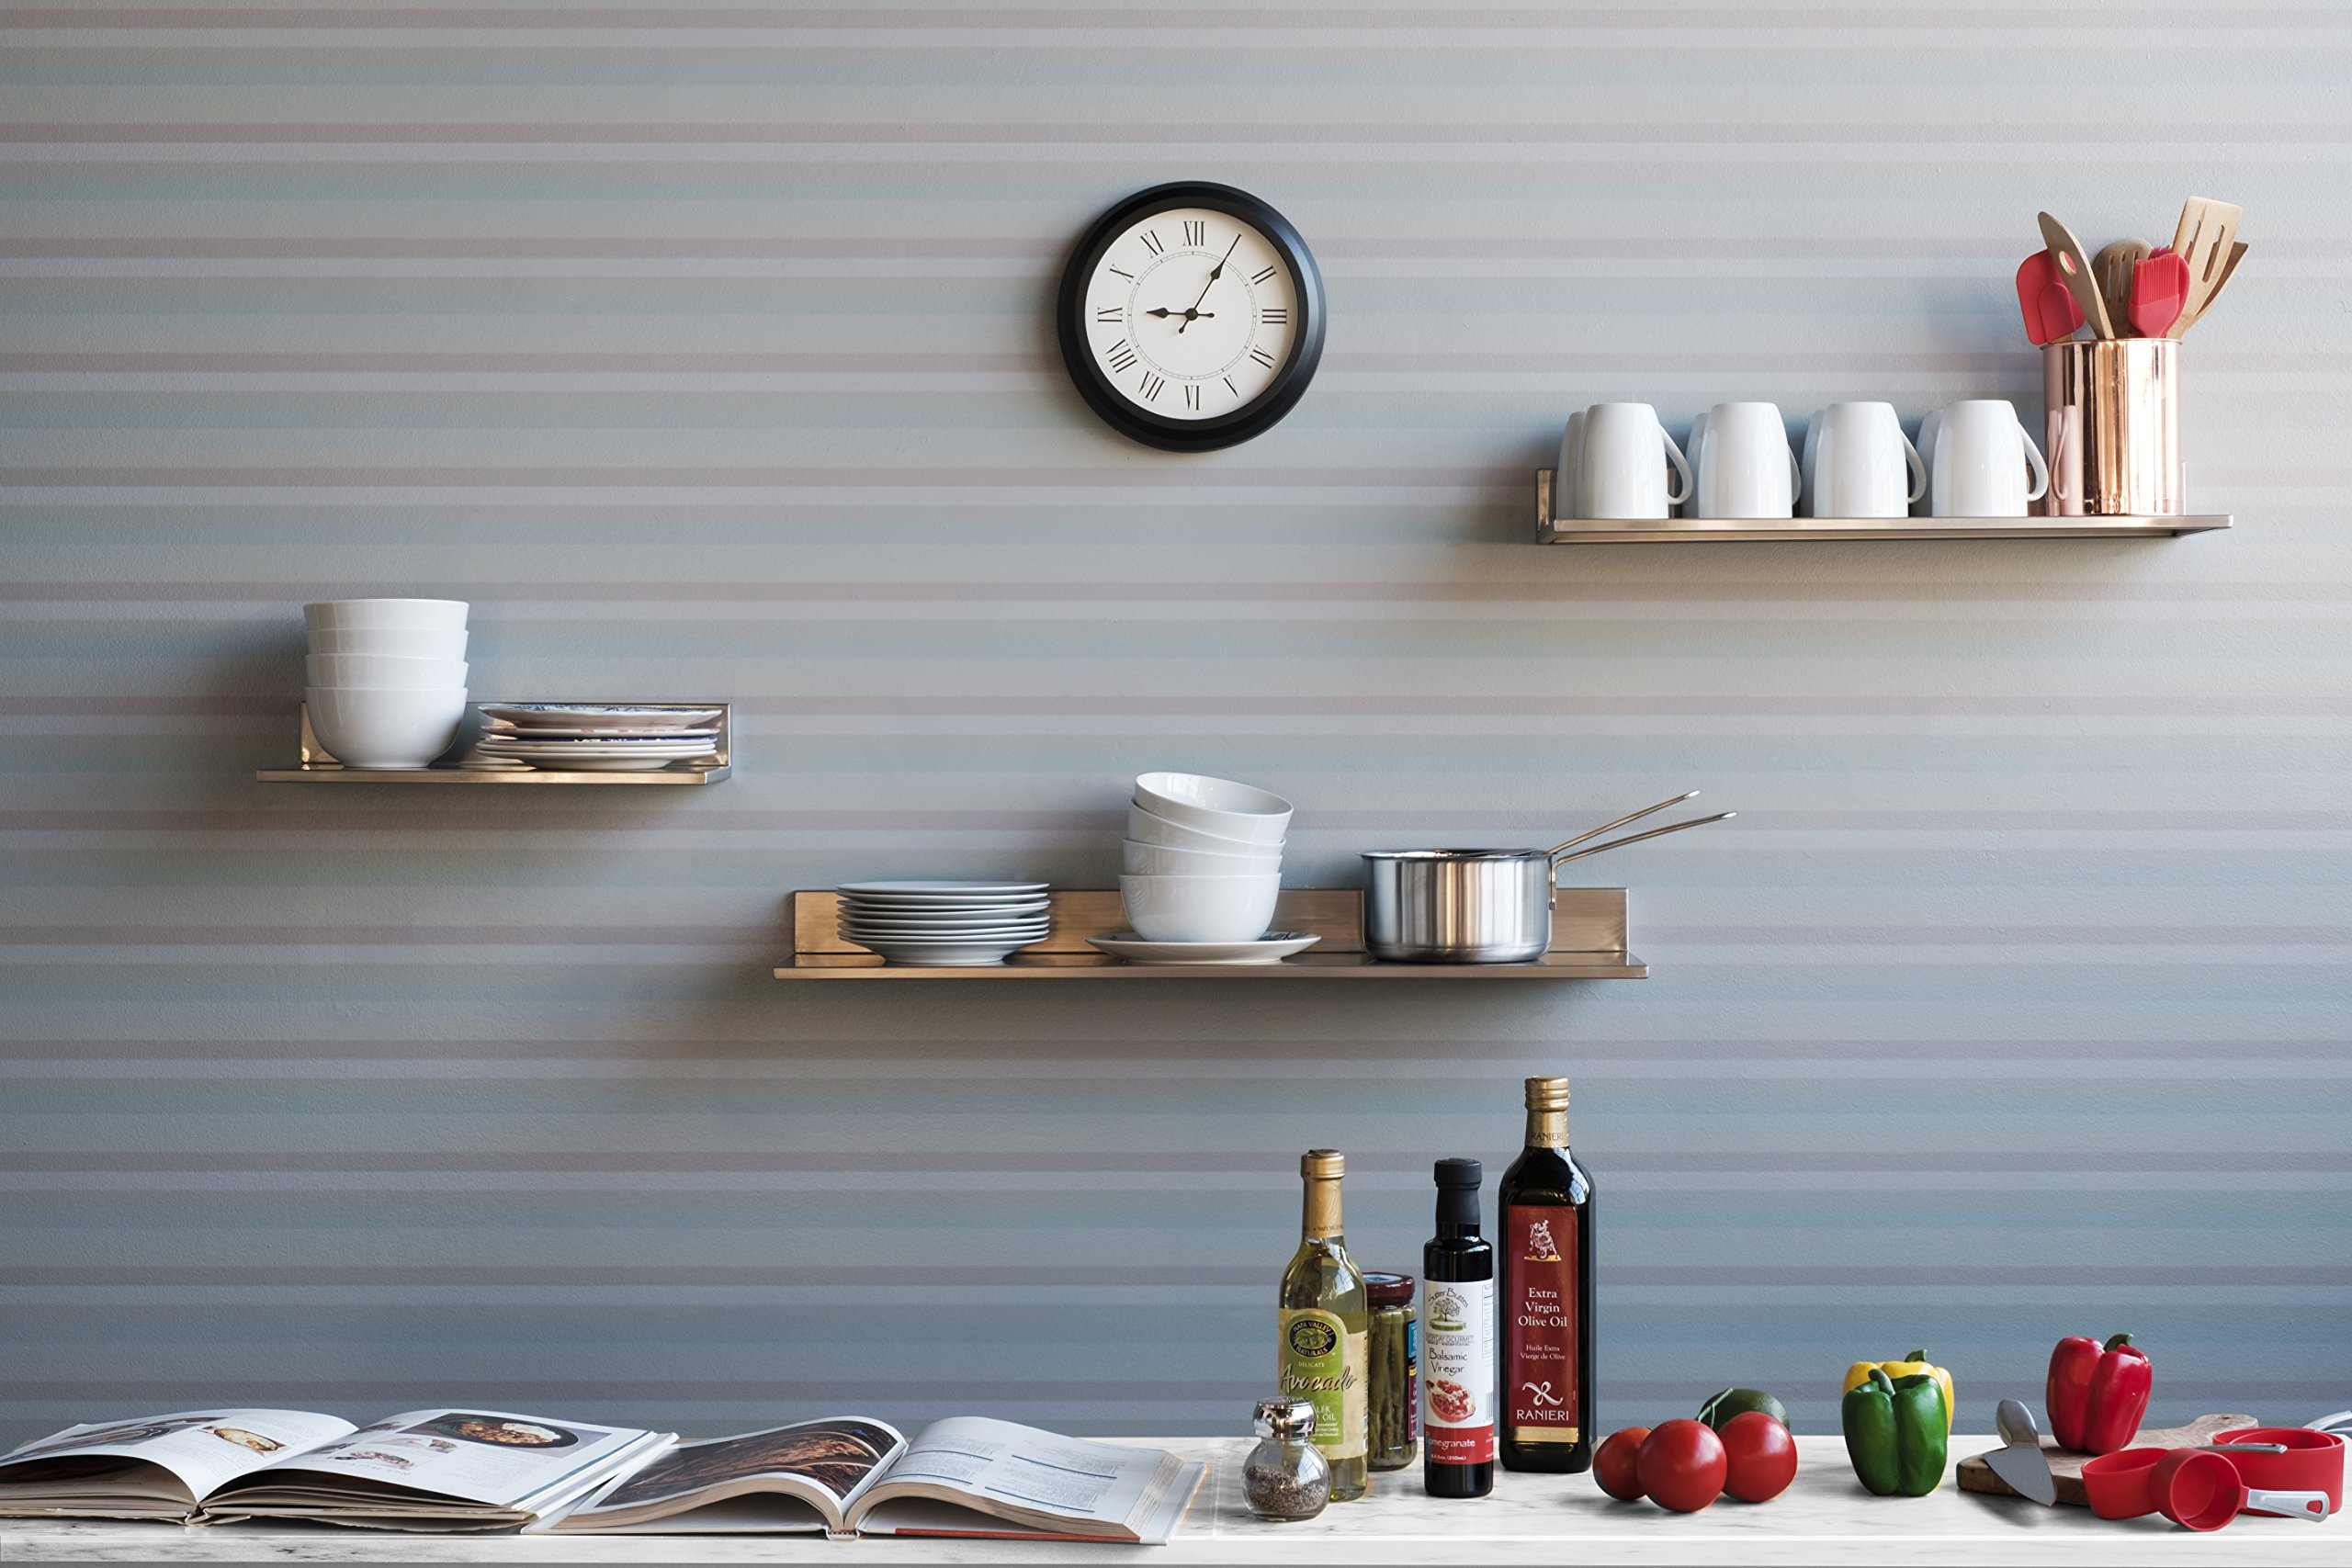 Stainless Steel Wall Mount Commercial and Home Use Premium Quality 30.50 Inches Kitchen Floating Shelves Set of 2 Silver by Fasthomegoods (Image #2)